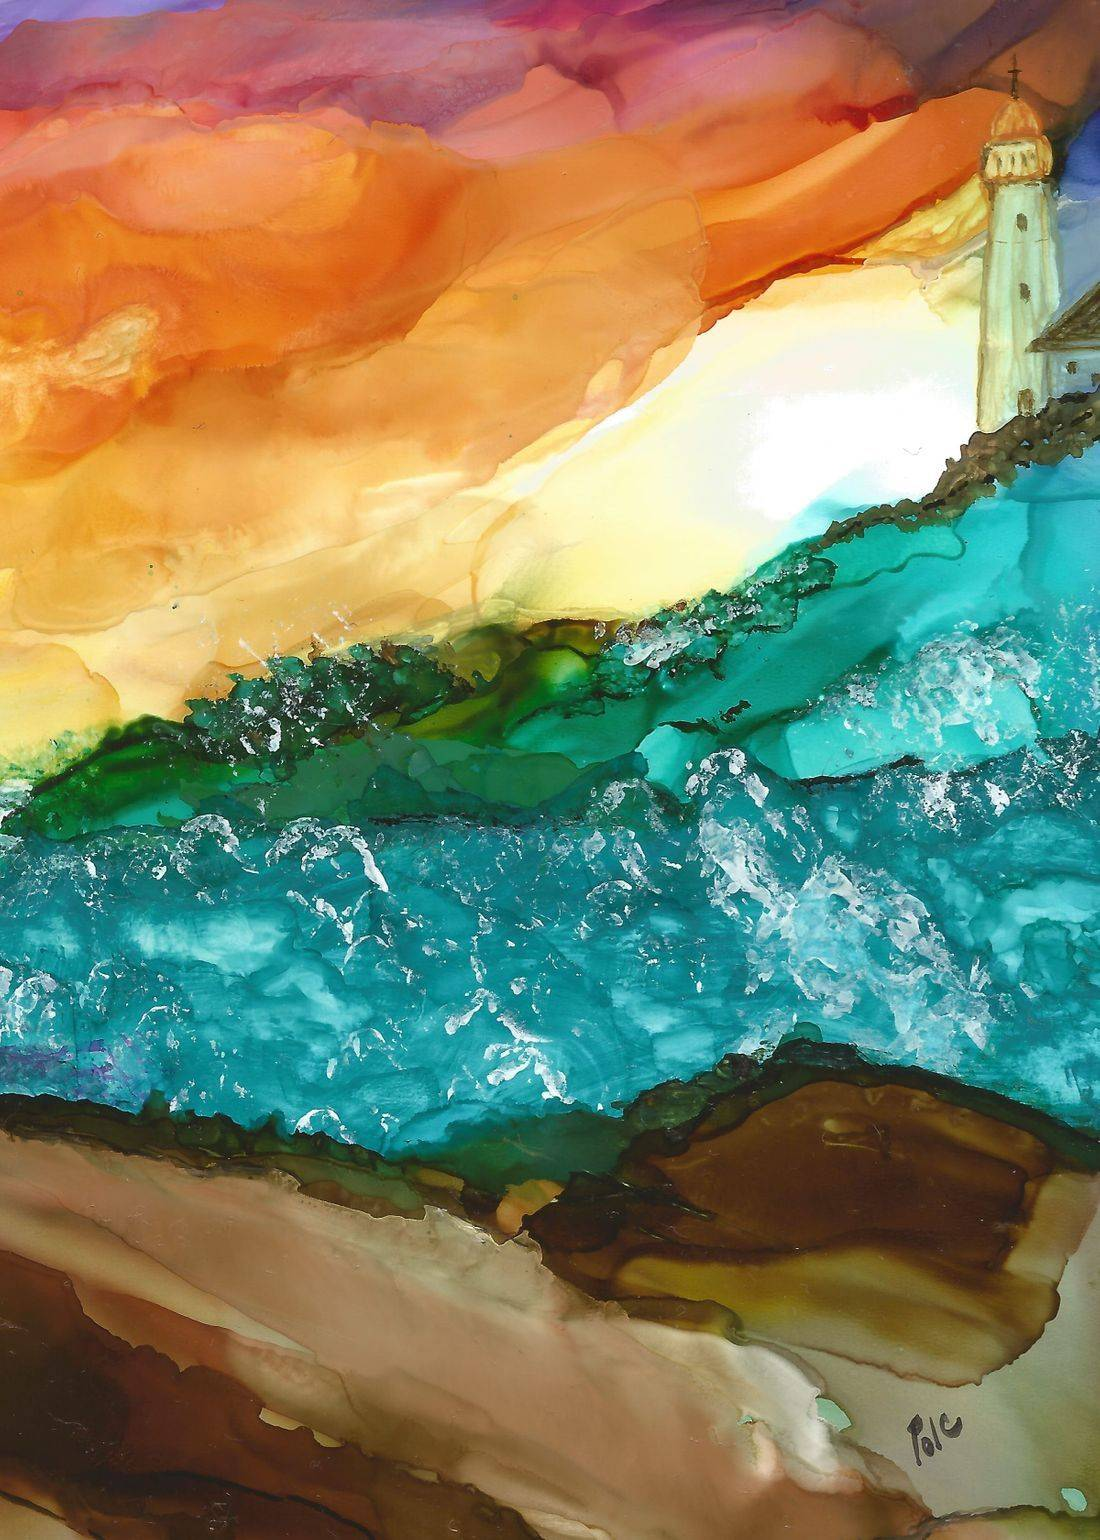 alcohol ink painting, abstract, lighthouse, abstract painting with alcohol ink, seascape, lighthouse painting, modern home decor, maritimes, ocean, beach,